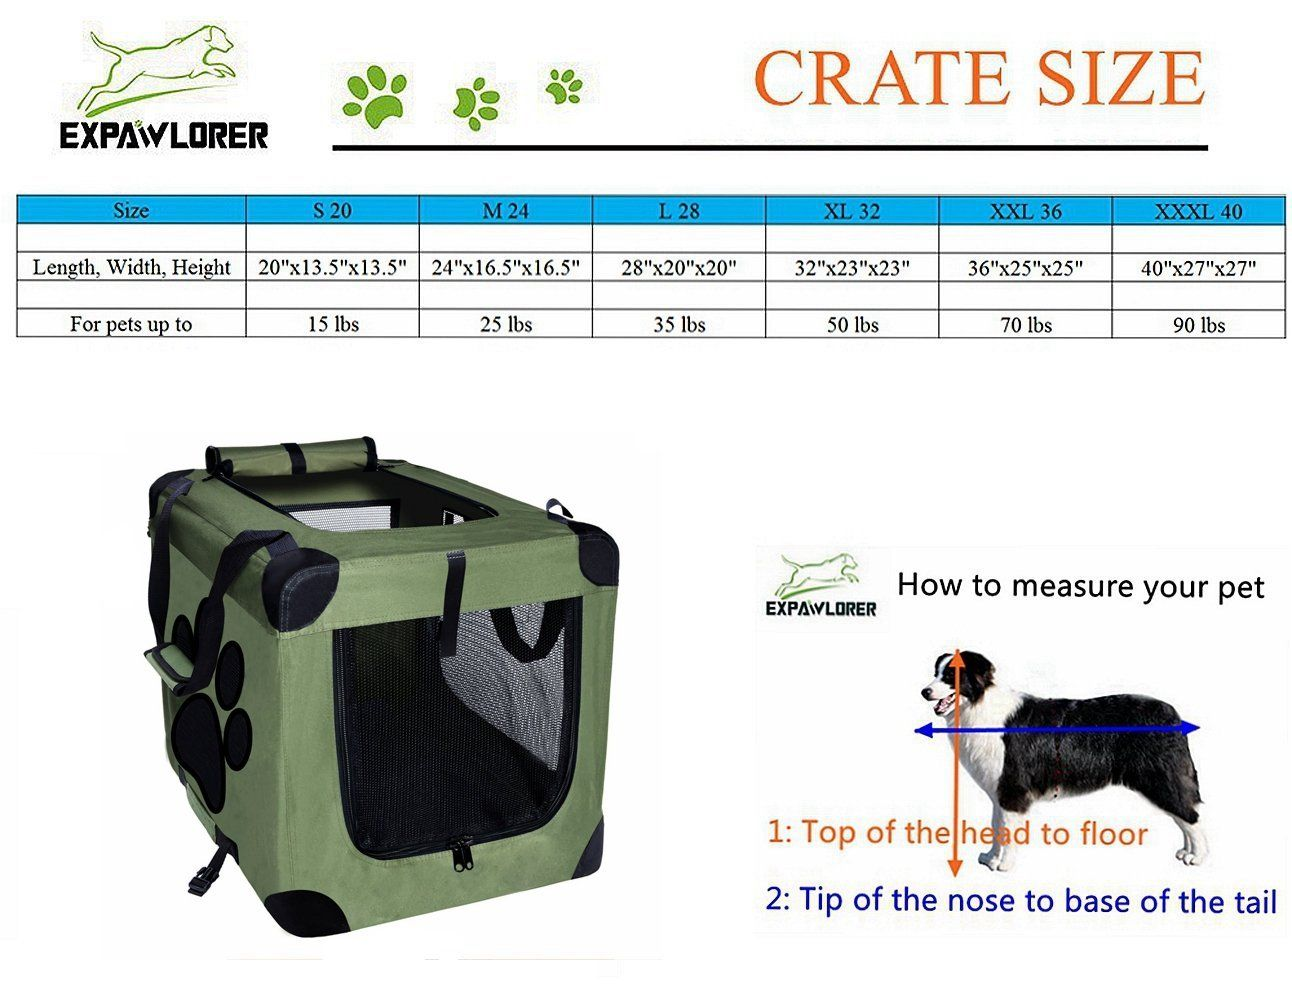 Expawlorer Collapsible Foldable Dog Crate Indoor Outdoor Pet Home